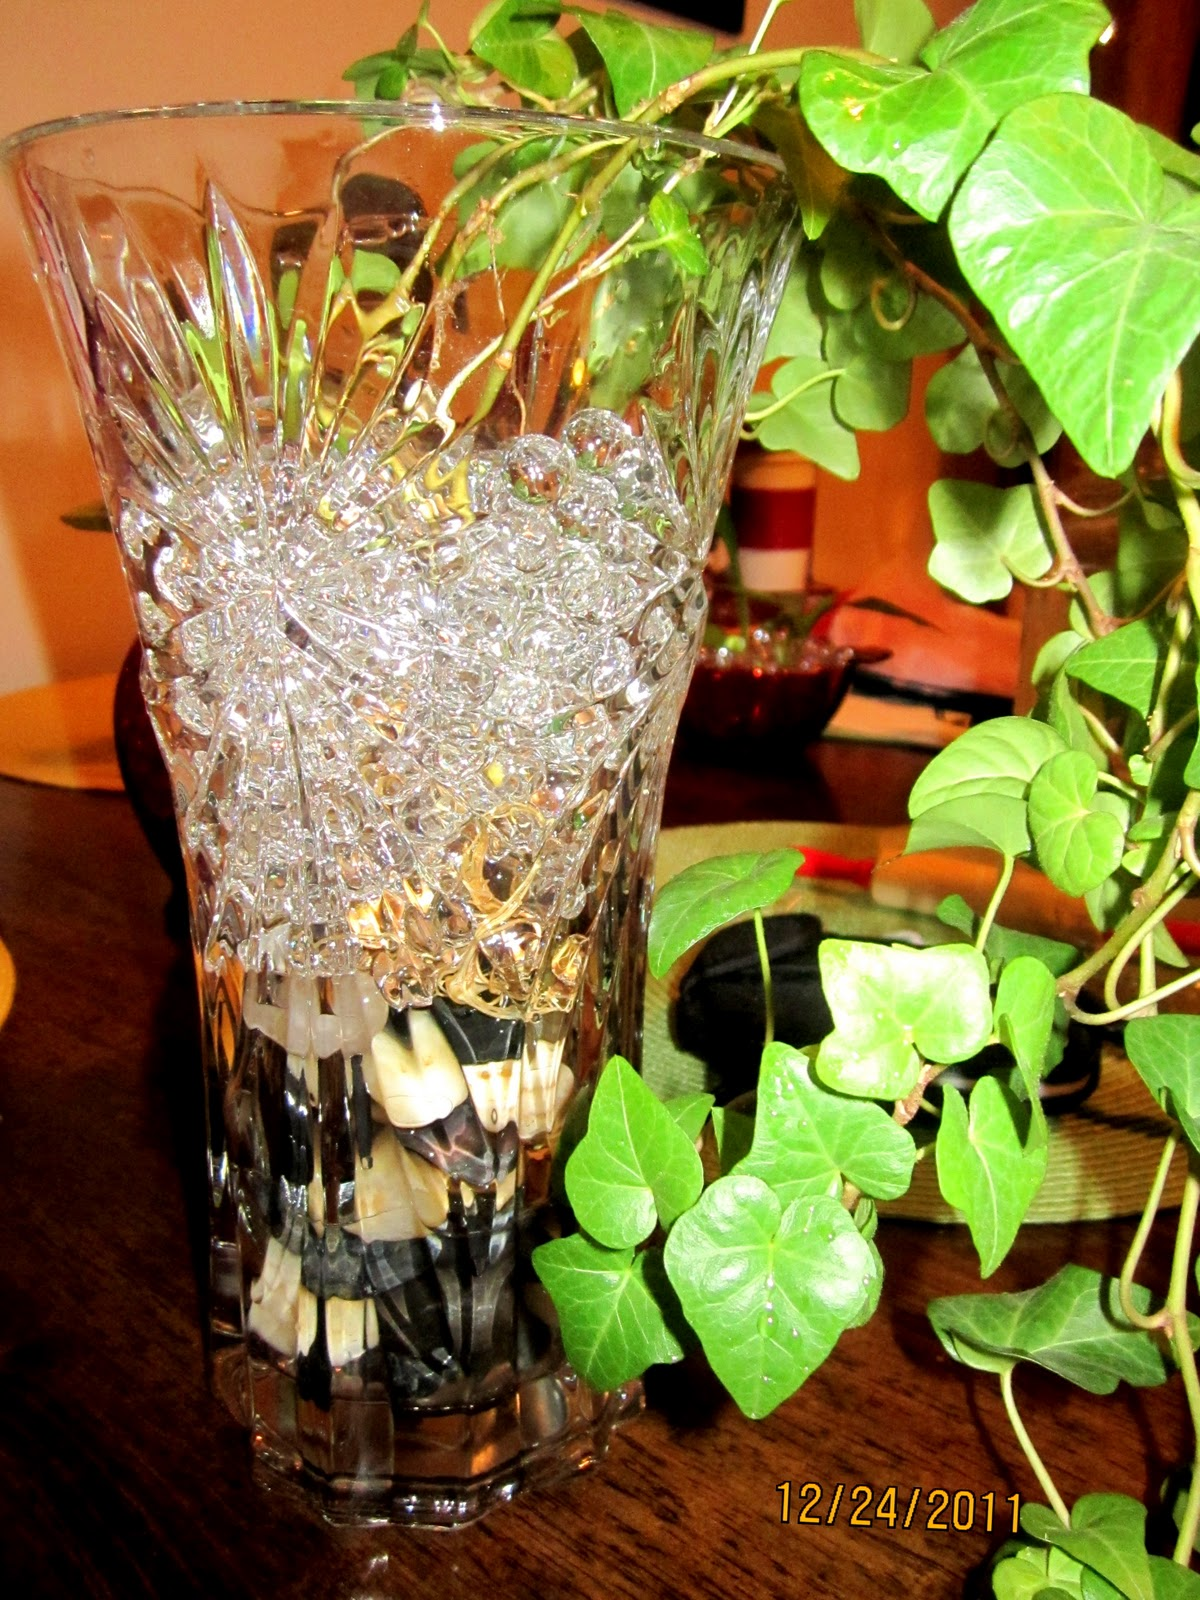 Homemade And Colorful Growing House Plants In Water Or